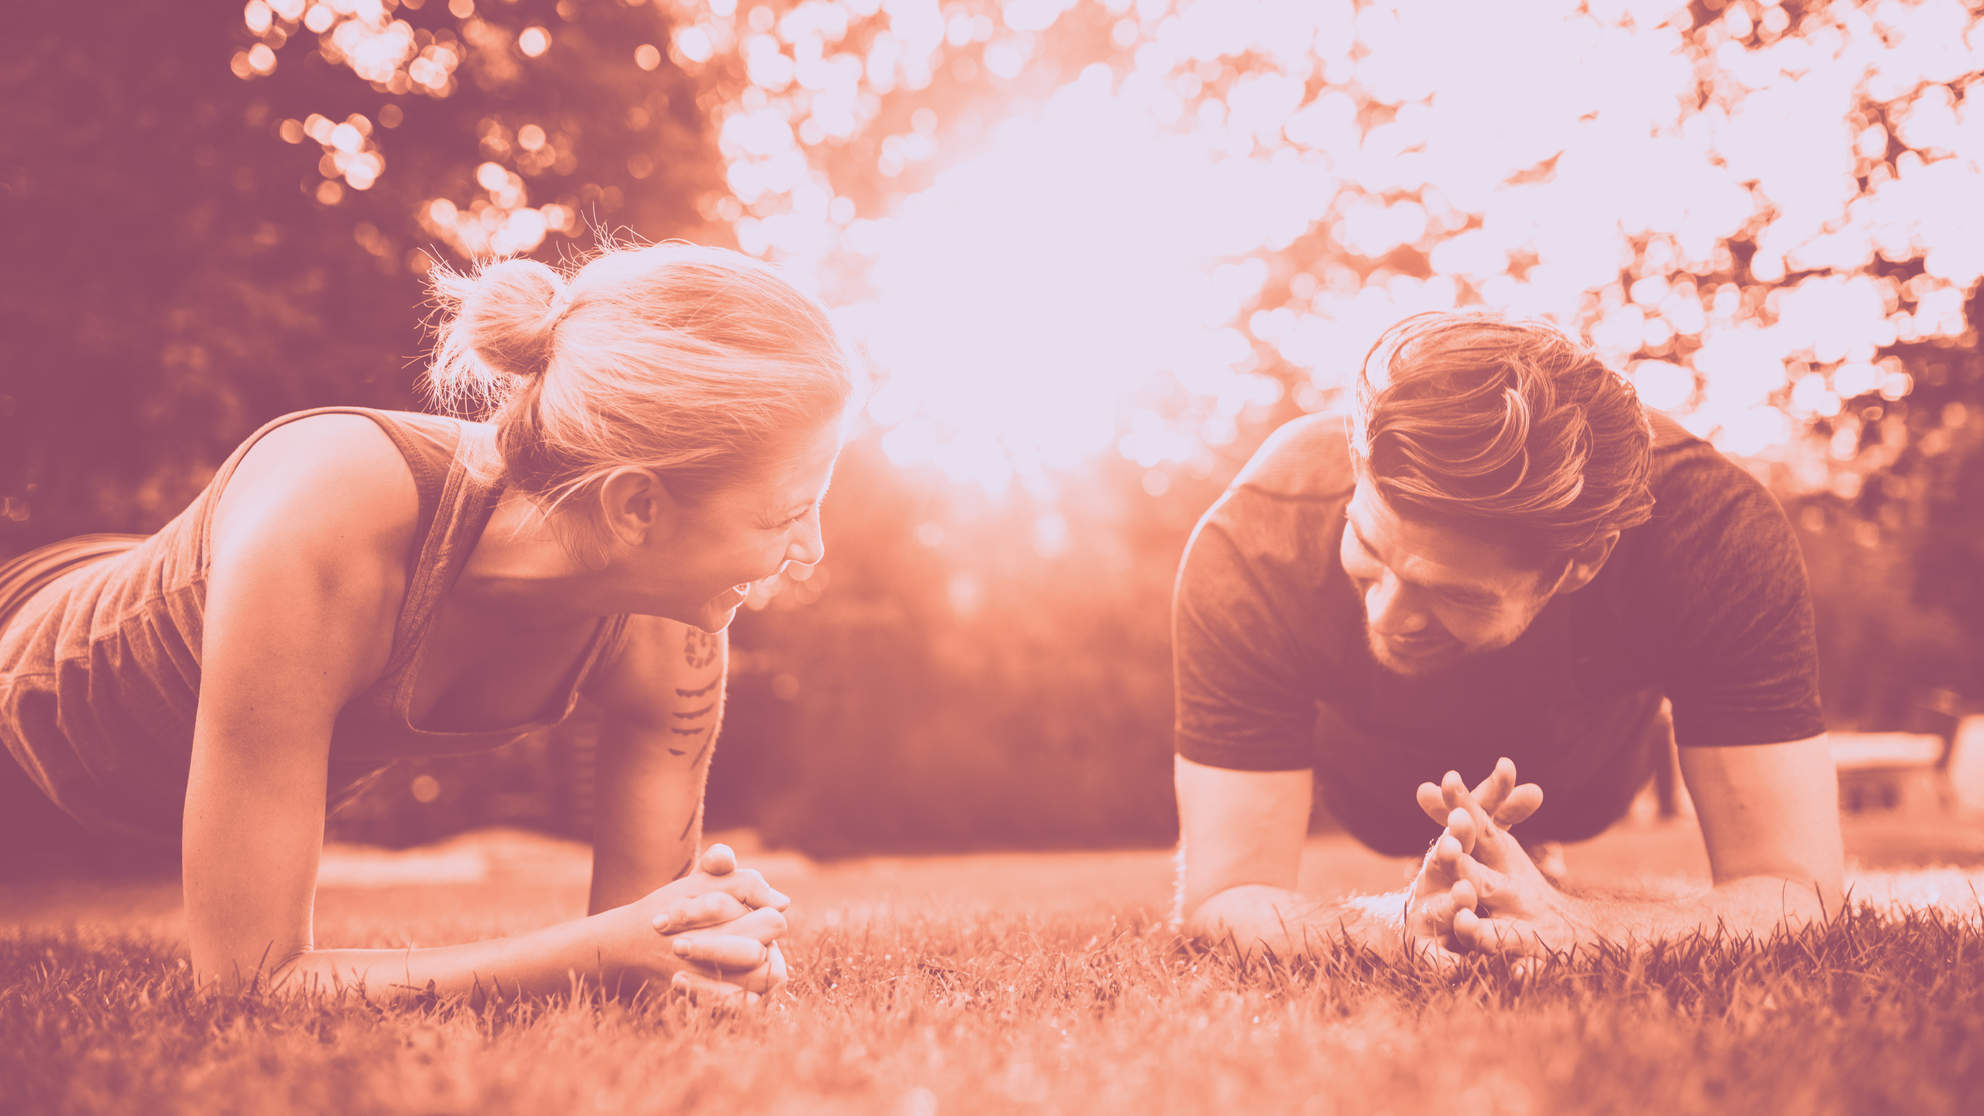 plank exercise couple relationship communication fitness love connection health wellbeing happiness